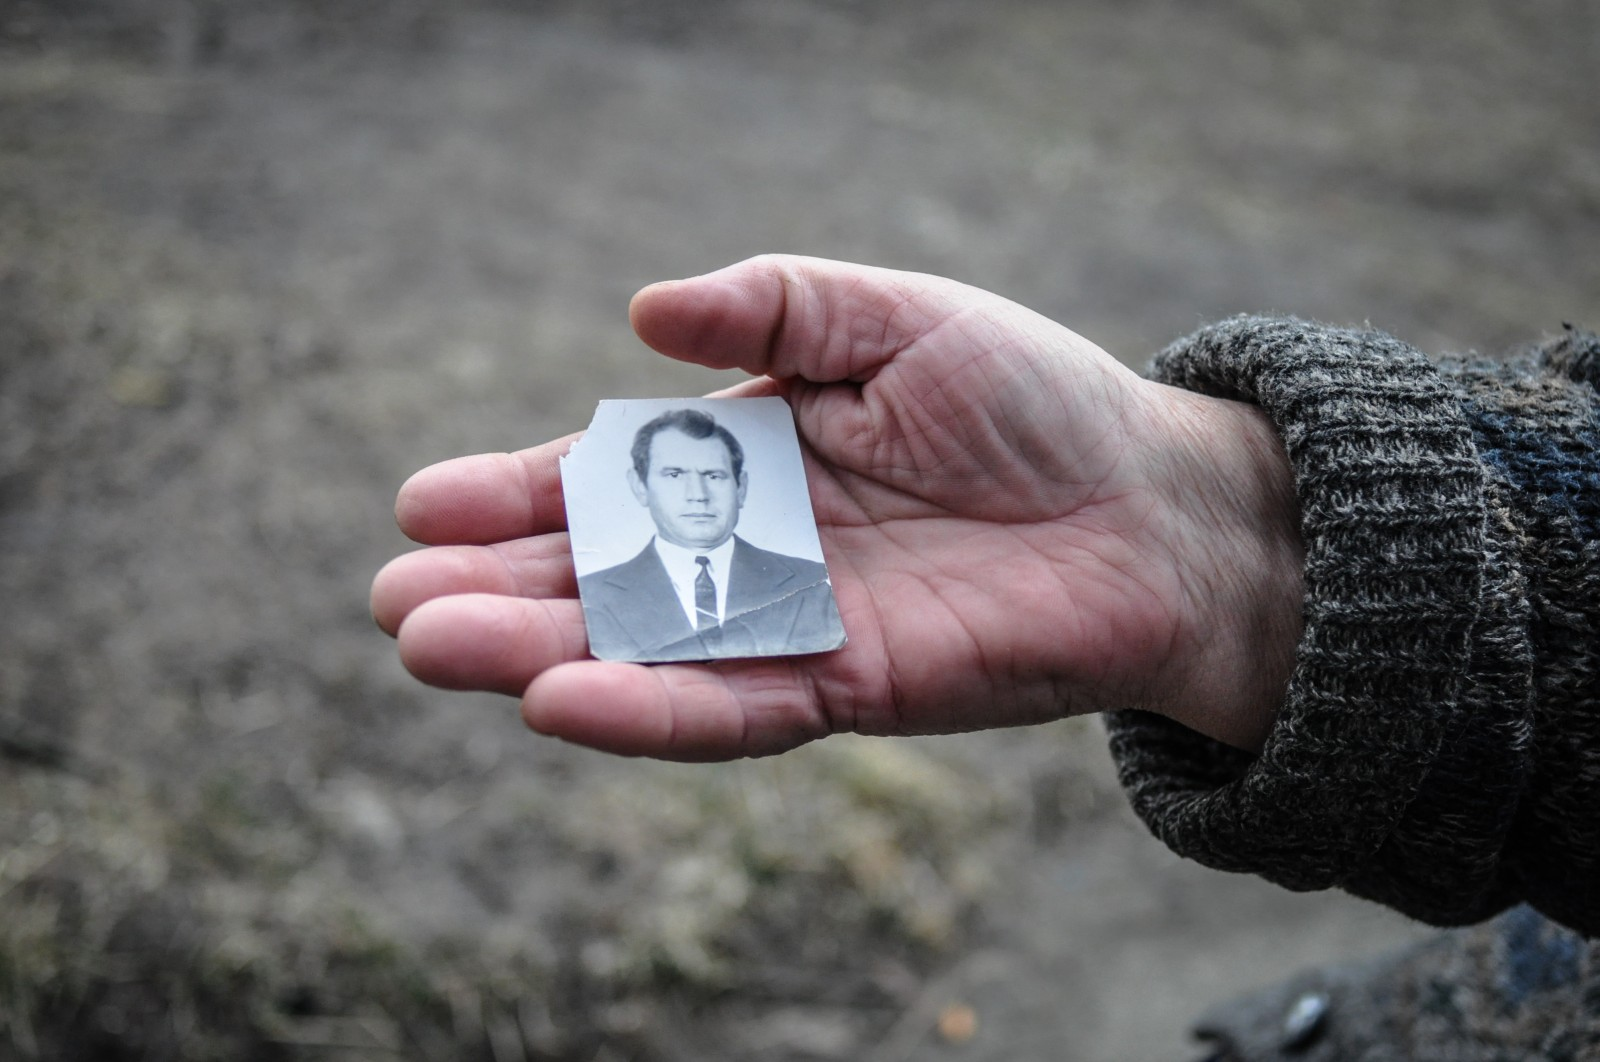 A 'Chernobyl widow' holds a photograph of her late-husband. She says he died from radiation exposure after working as a liquidator after the accident.